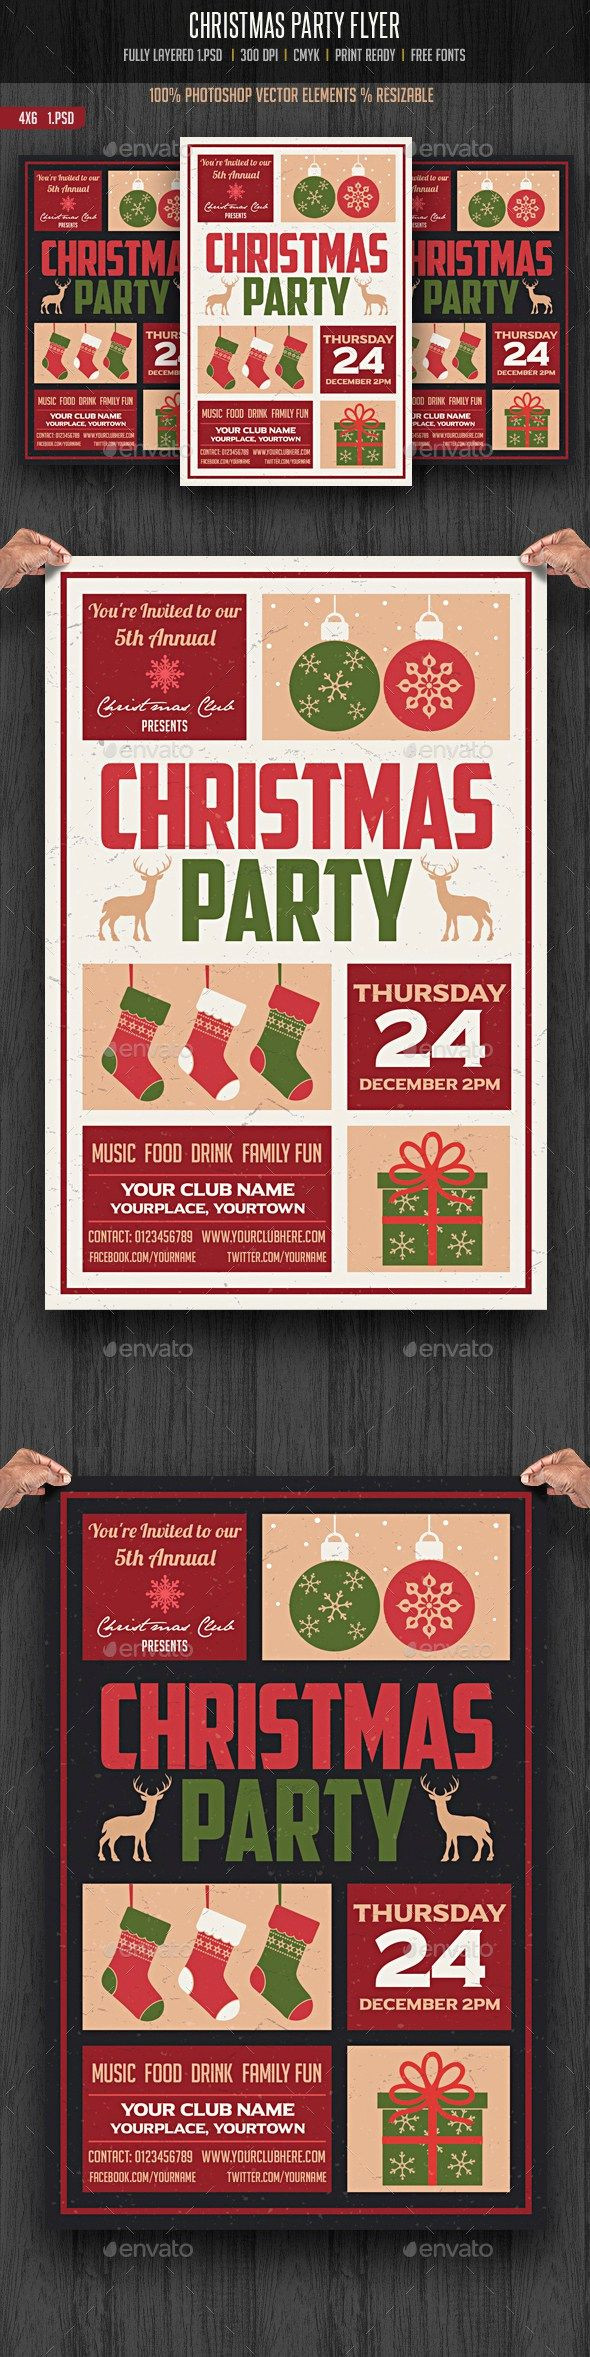 Holiday Party Flyer Ideas  Christmas Party Flyer